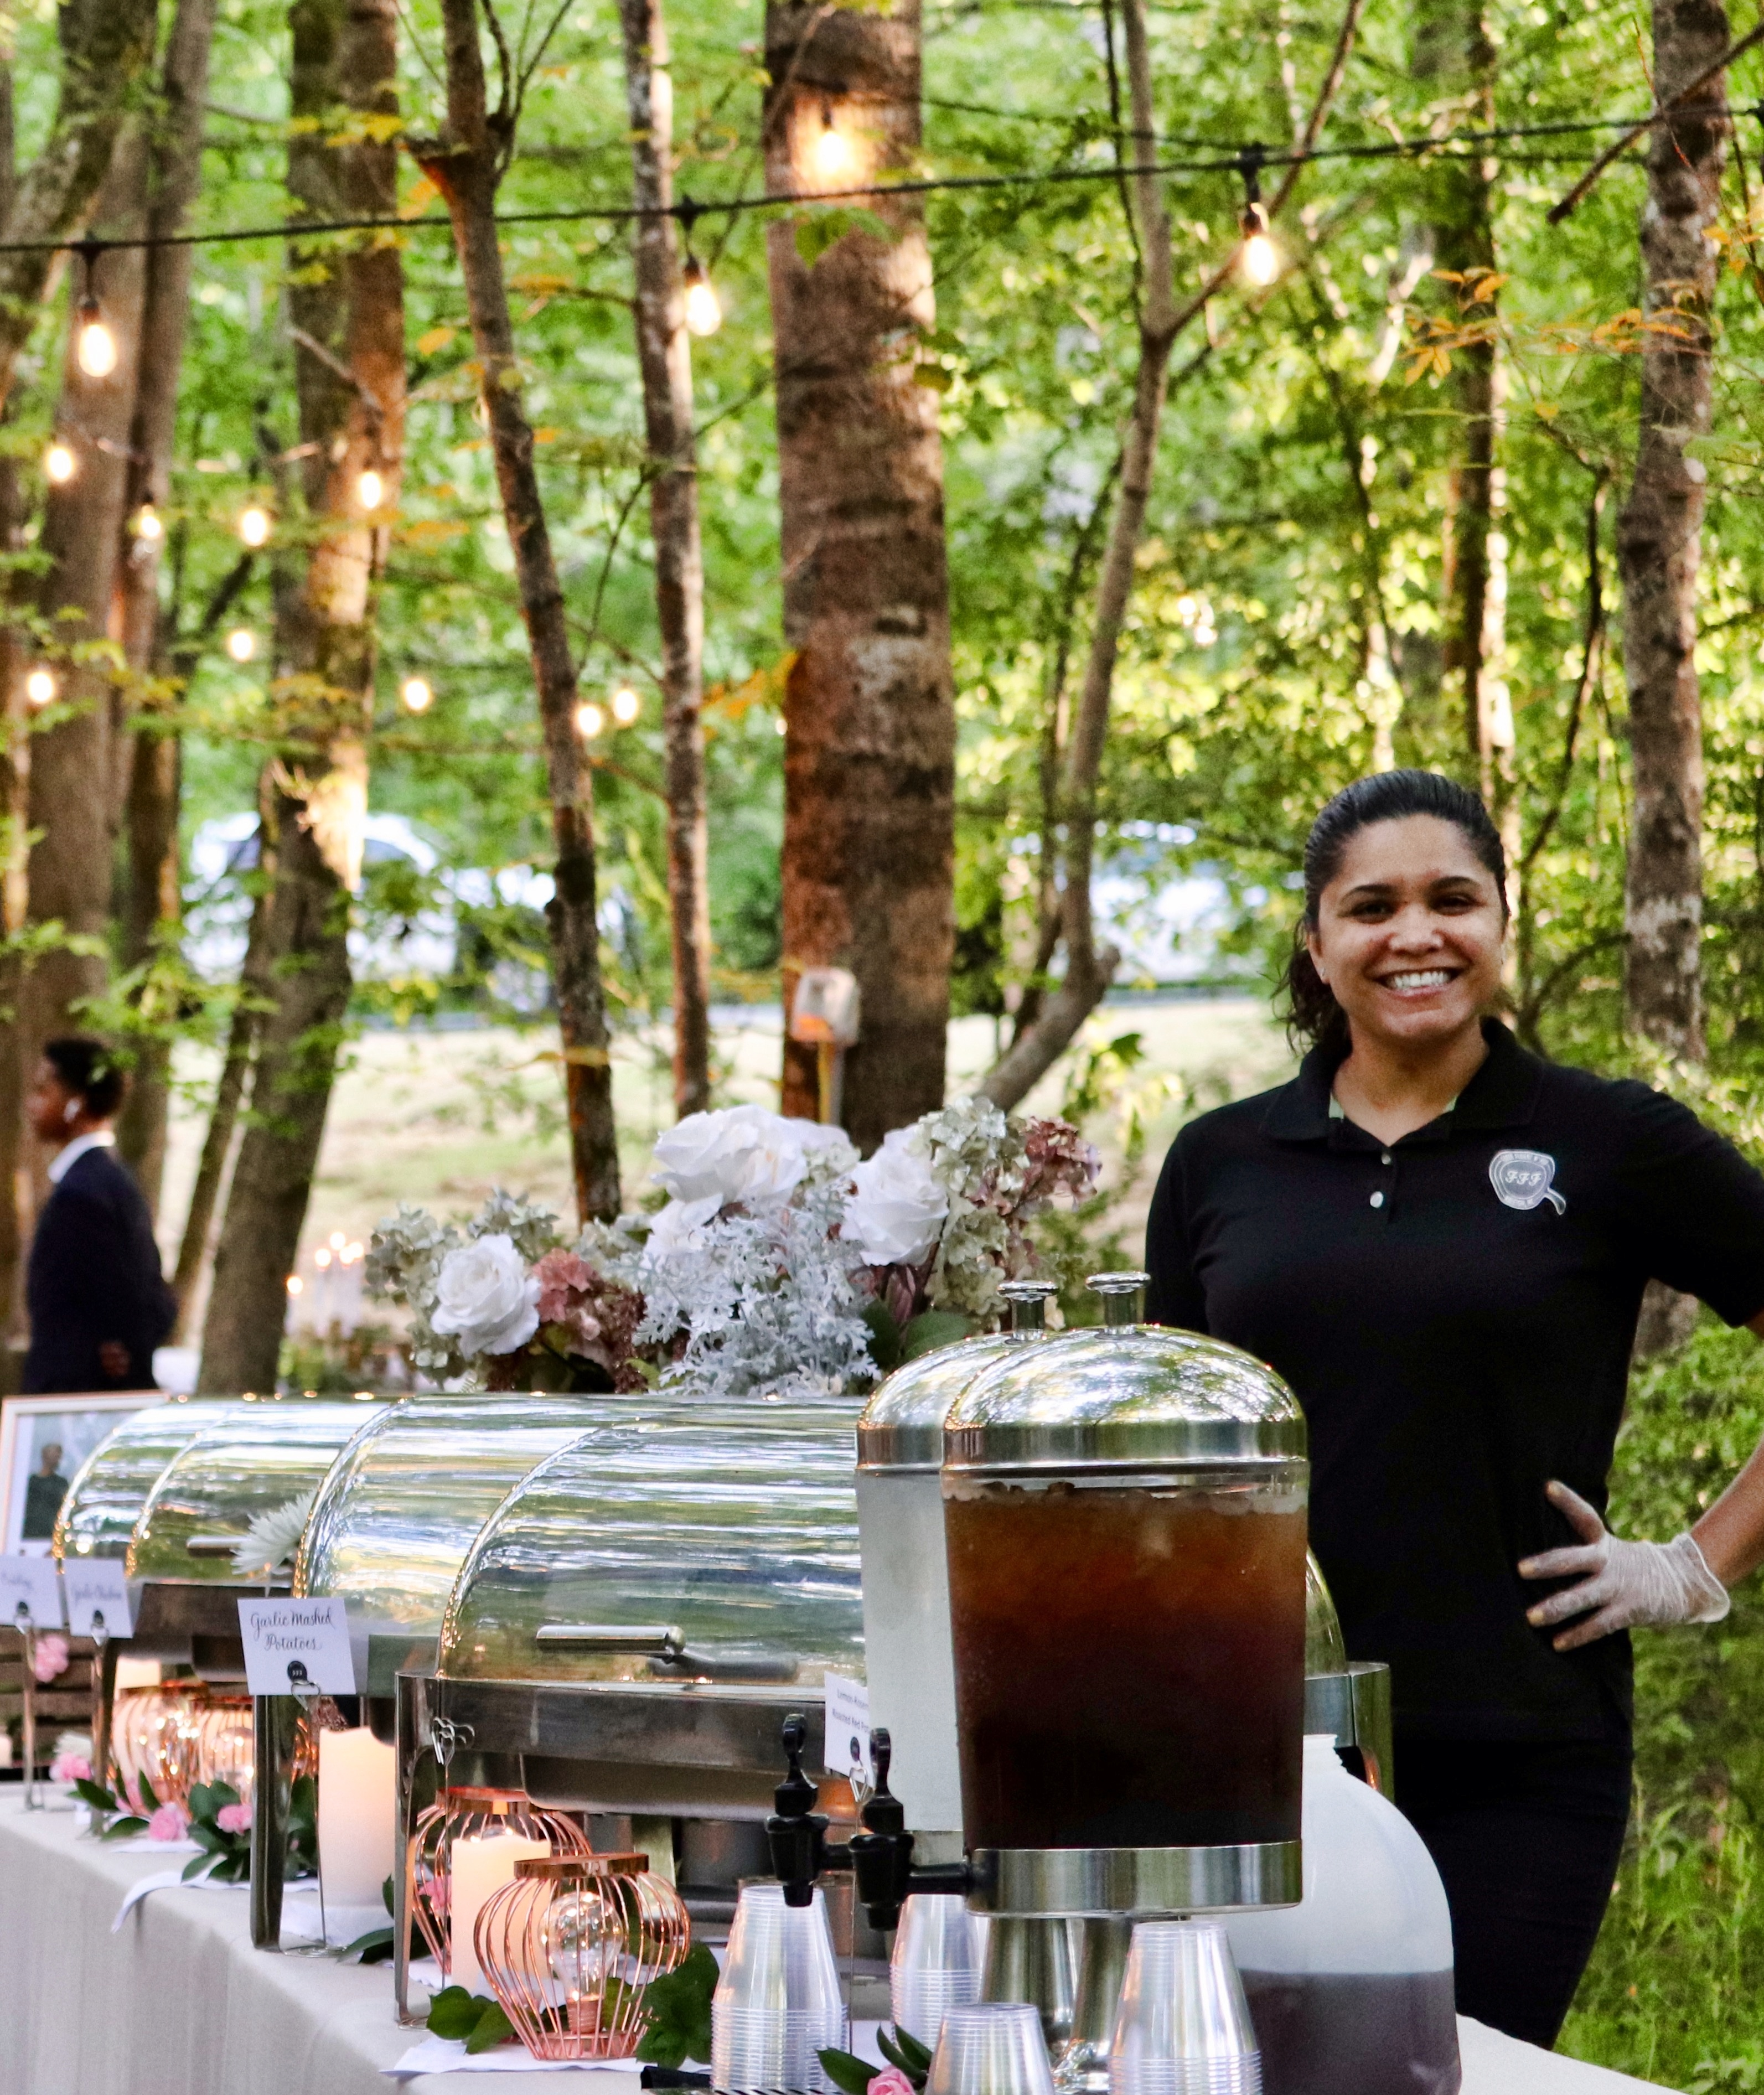 Real Weddings: Honoring Family through Food